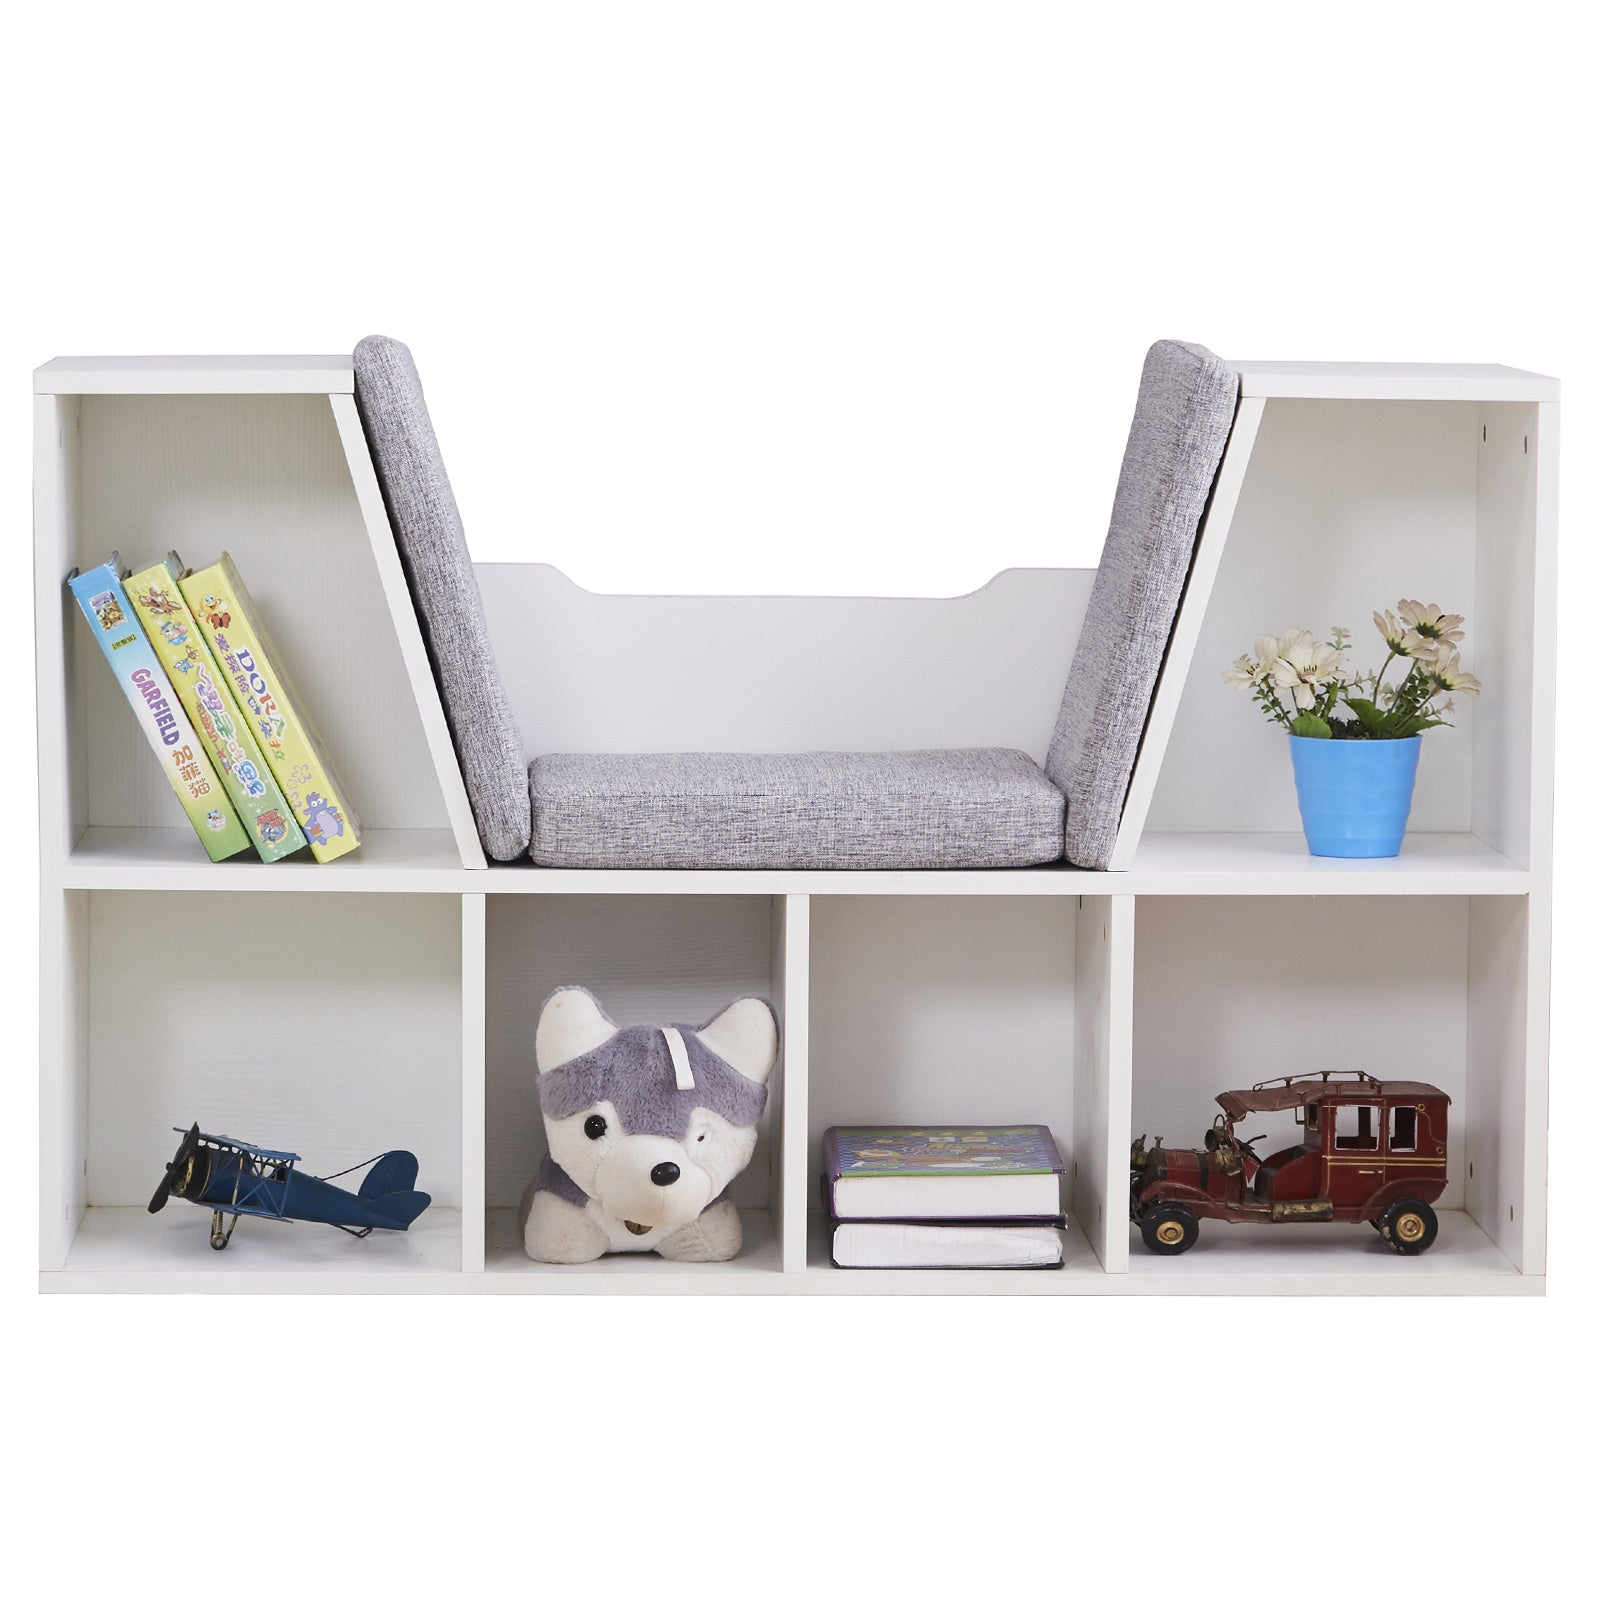 6-Cubby Kids Bookcase, Multi-Purpose Storage Organizer Cabinet Shelf for Children Dark Natural Color RT